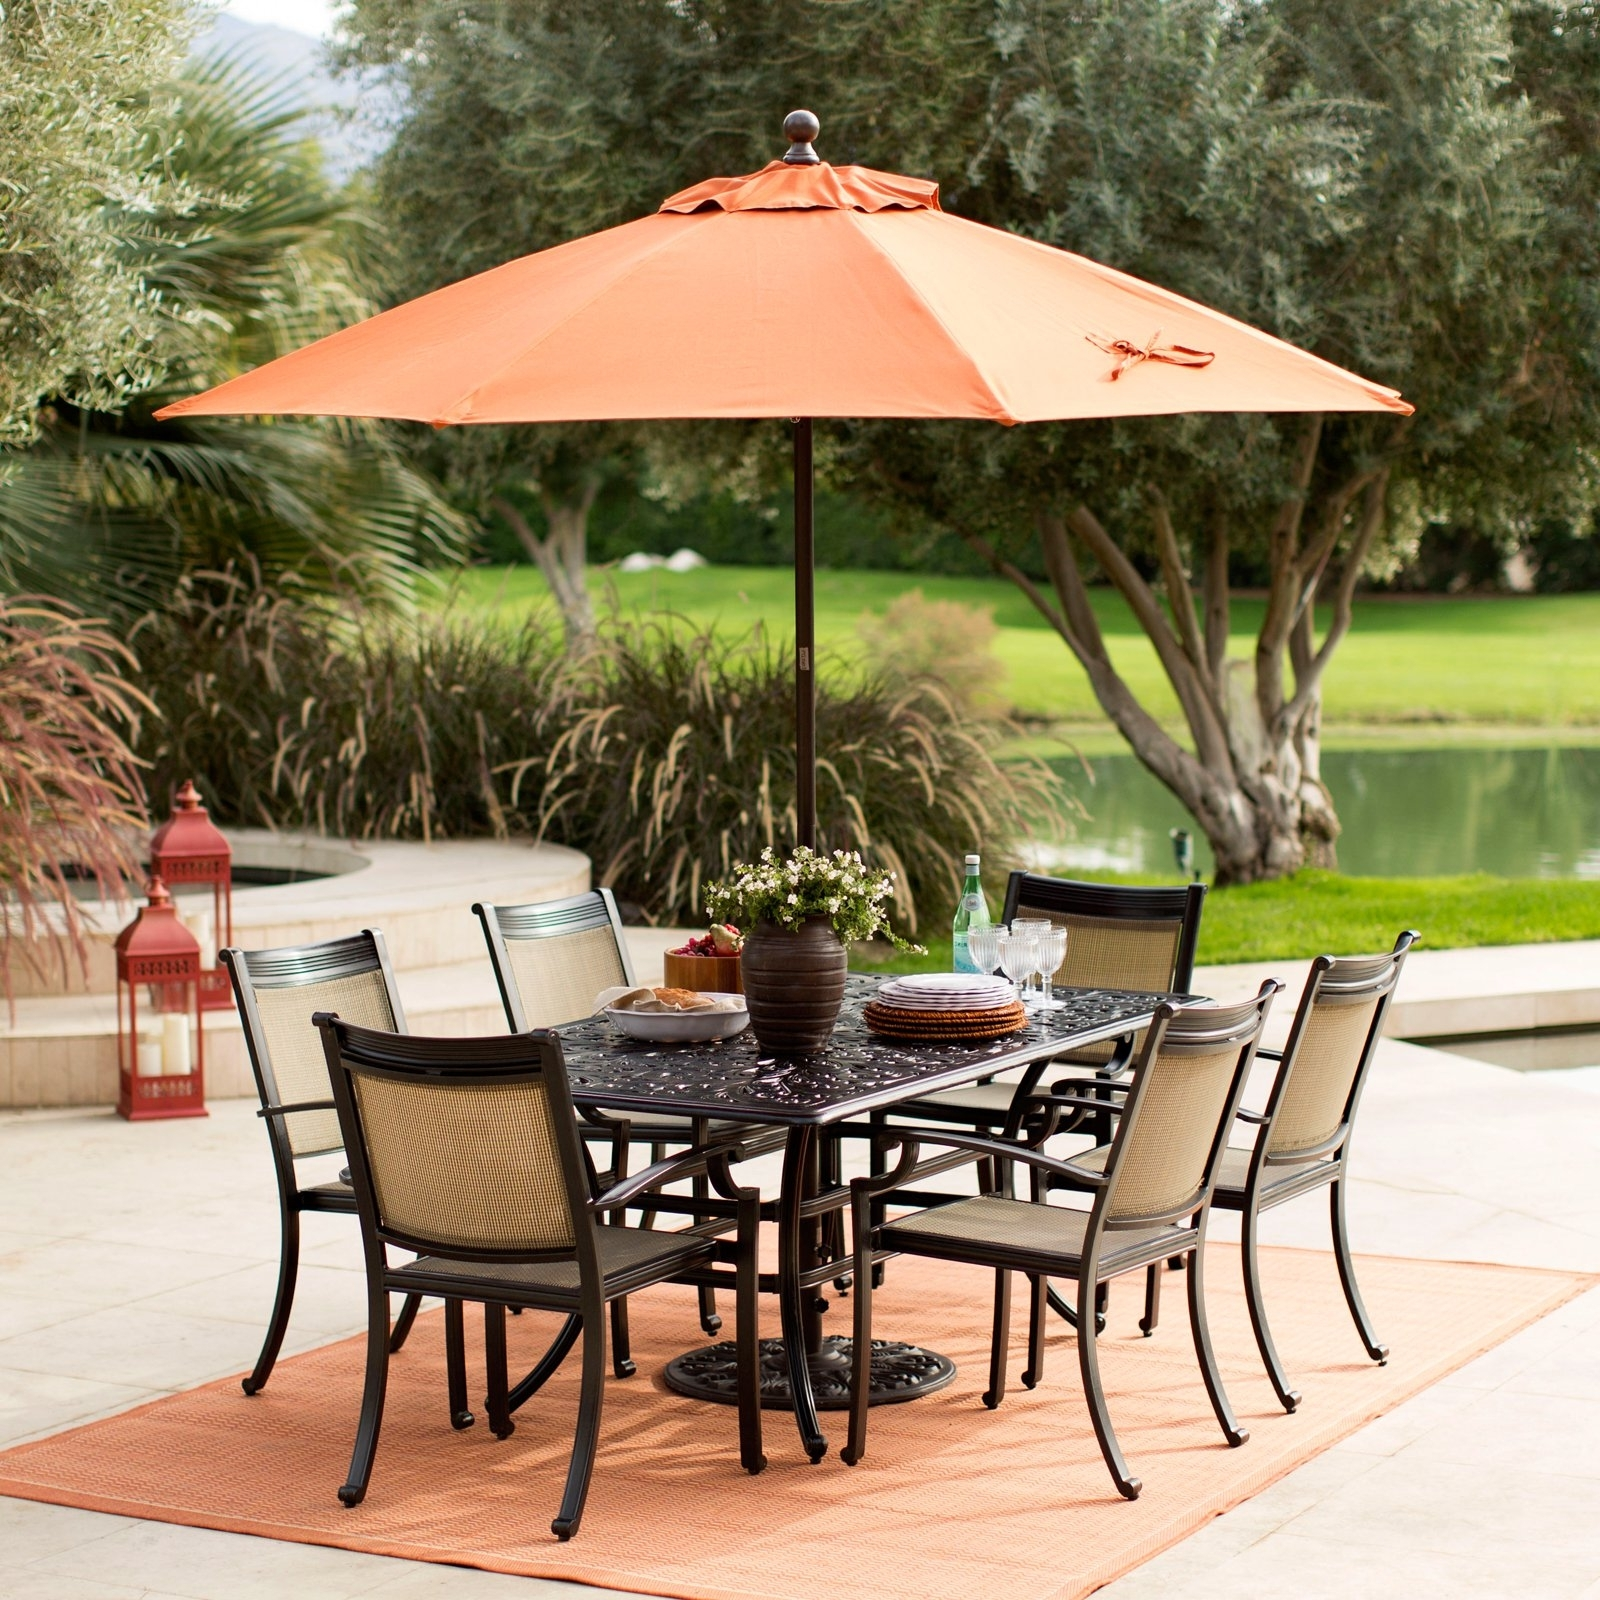 Sunbrella Patio Table Umbrellas In Recent Coral Coast 9 Ft (View 2 of 20)